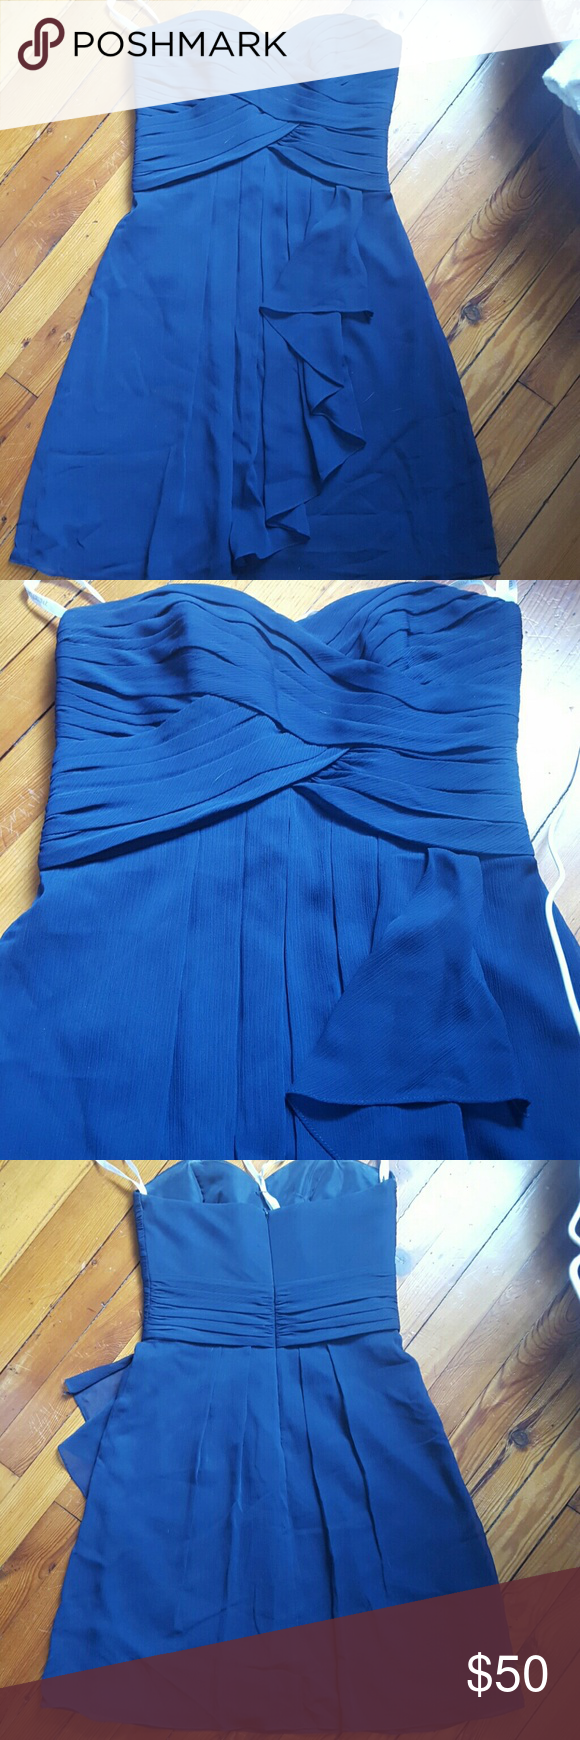 Chiffon bridesmaid dress Worn once, still in amazing condition but could use a dry cleaning. Navy Blue chiffon dress, very flattering cut! David's Bridal Dresses Wedding